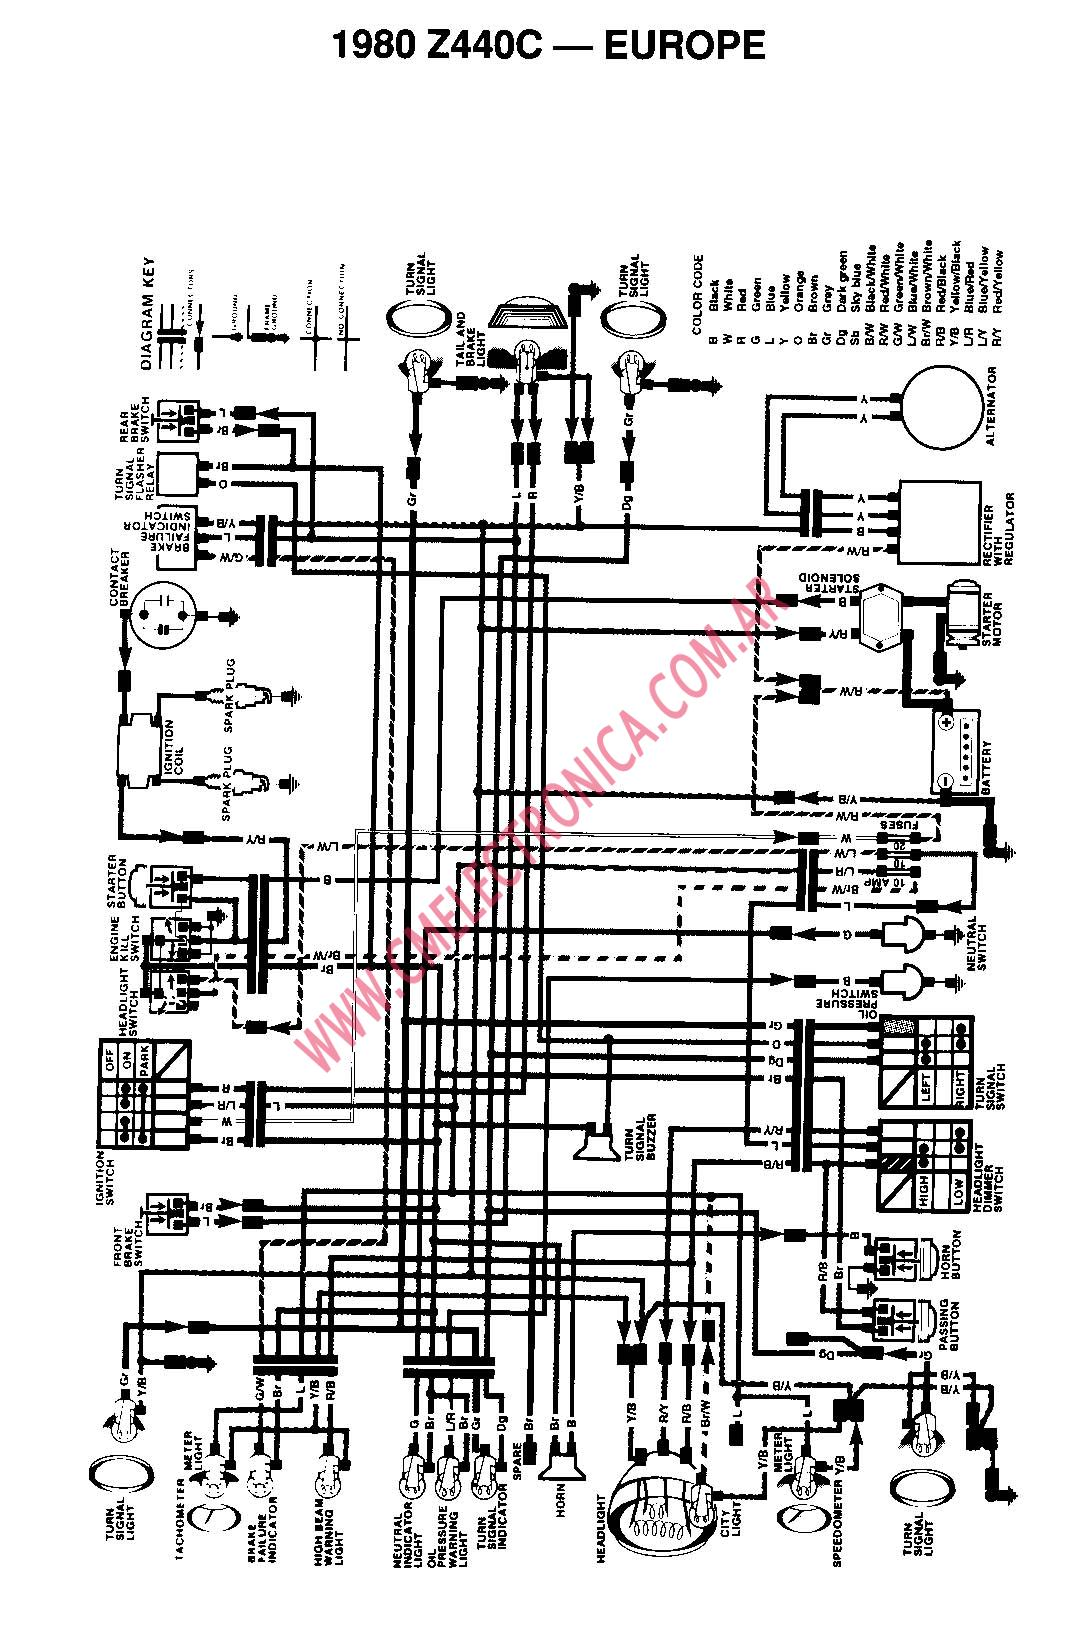 kawasaki z440c how to install a 220 volt outlet askmediy readingrat net bayou 300 wiring diagram at gsmx.co